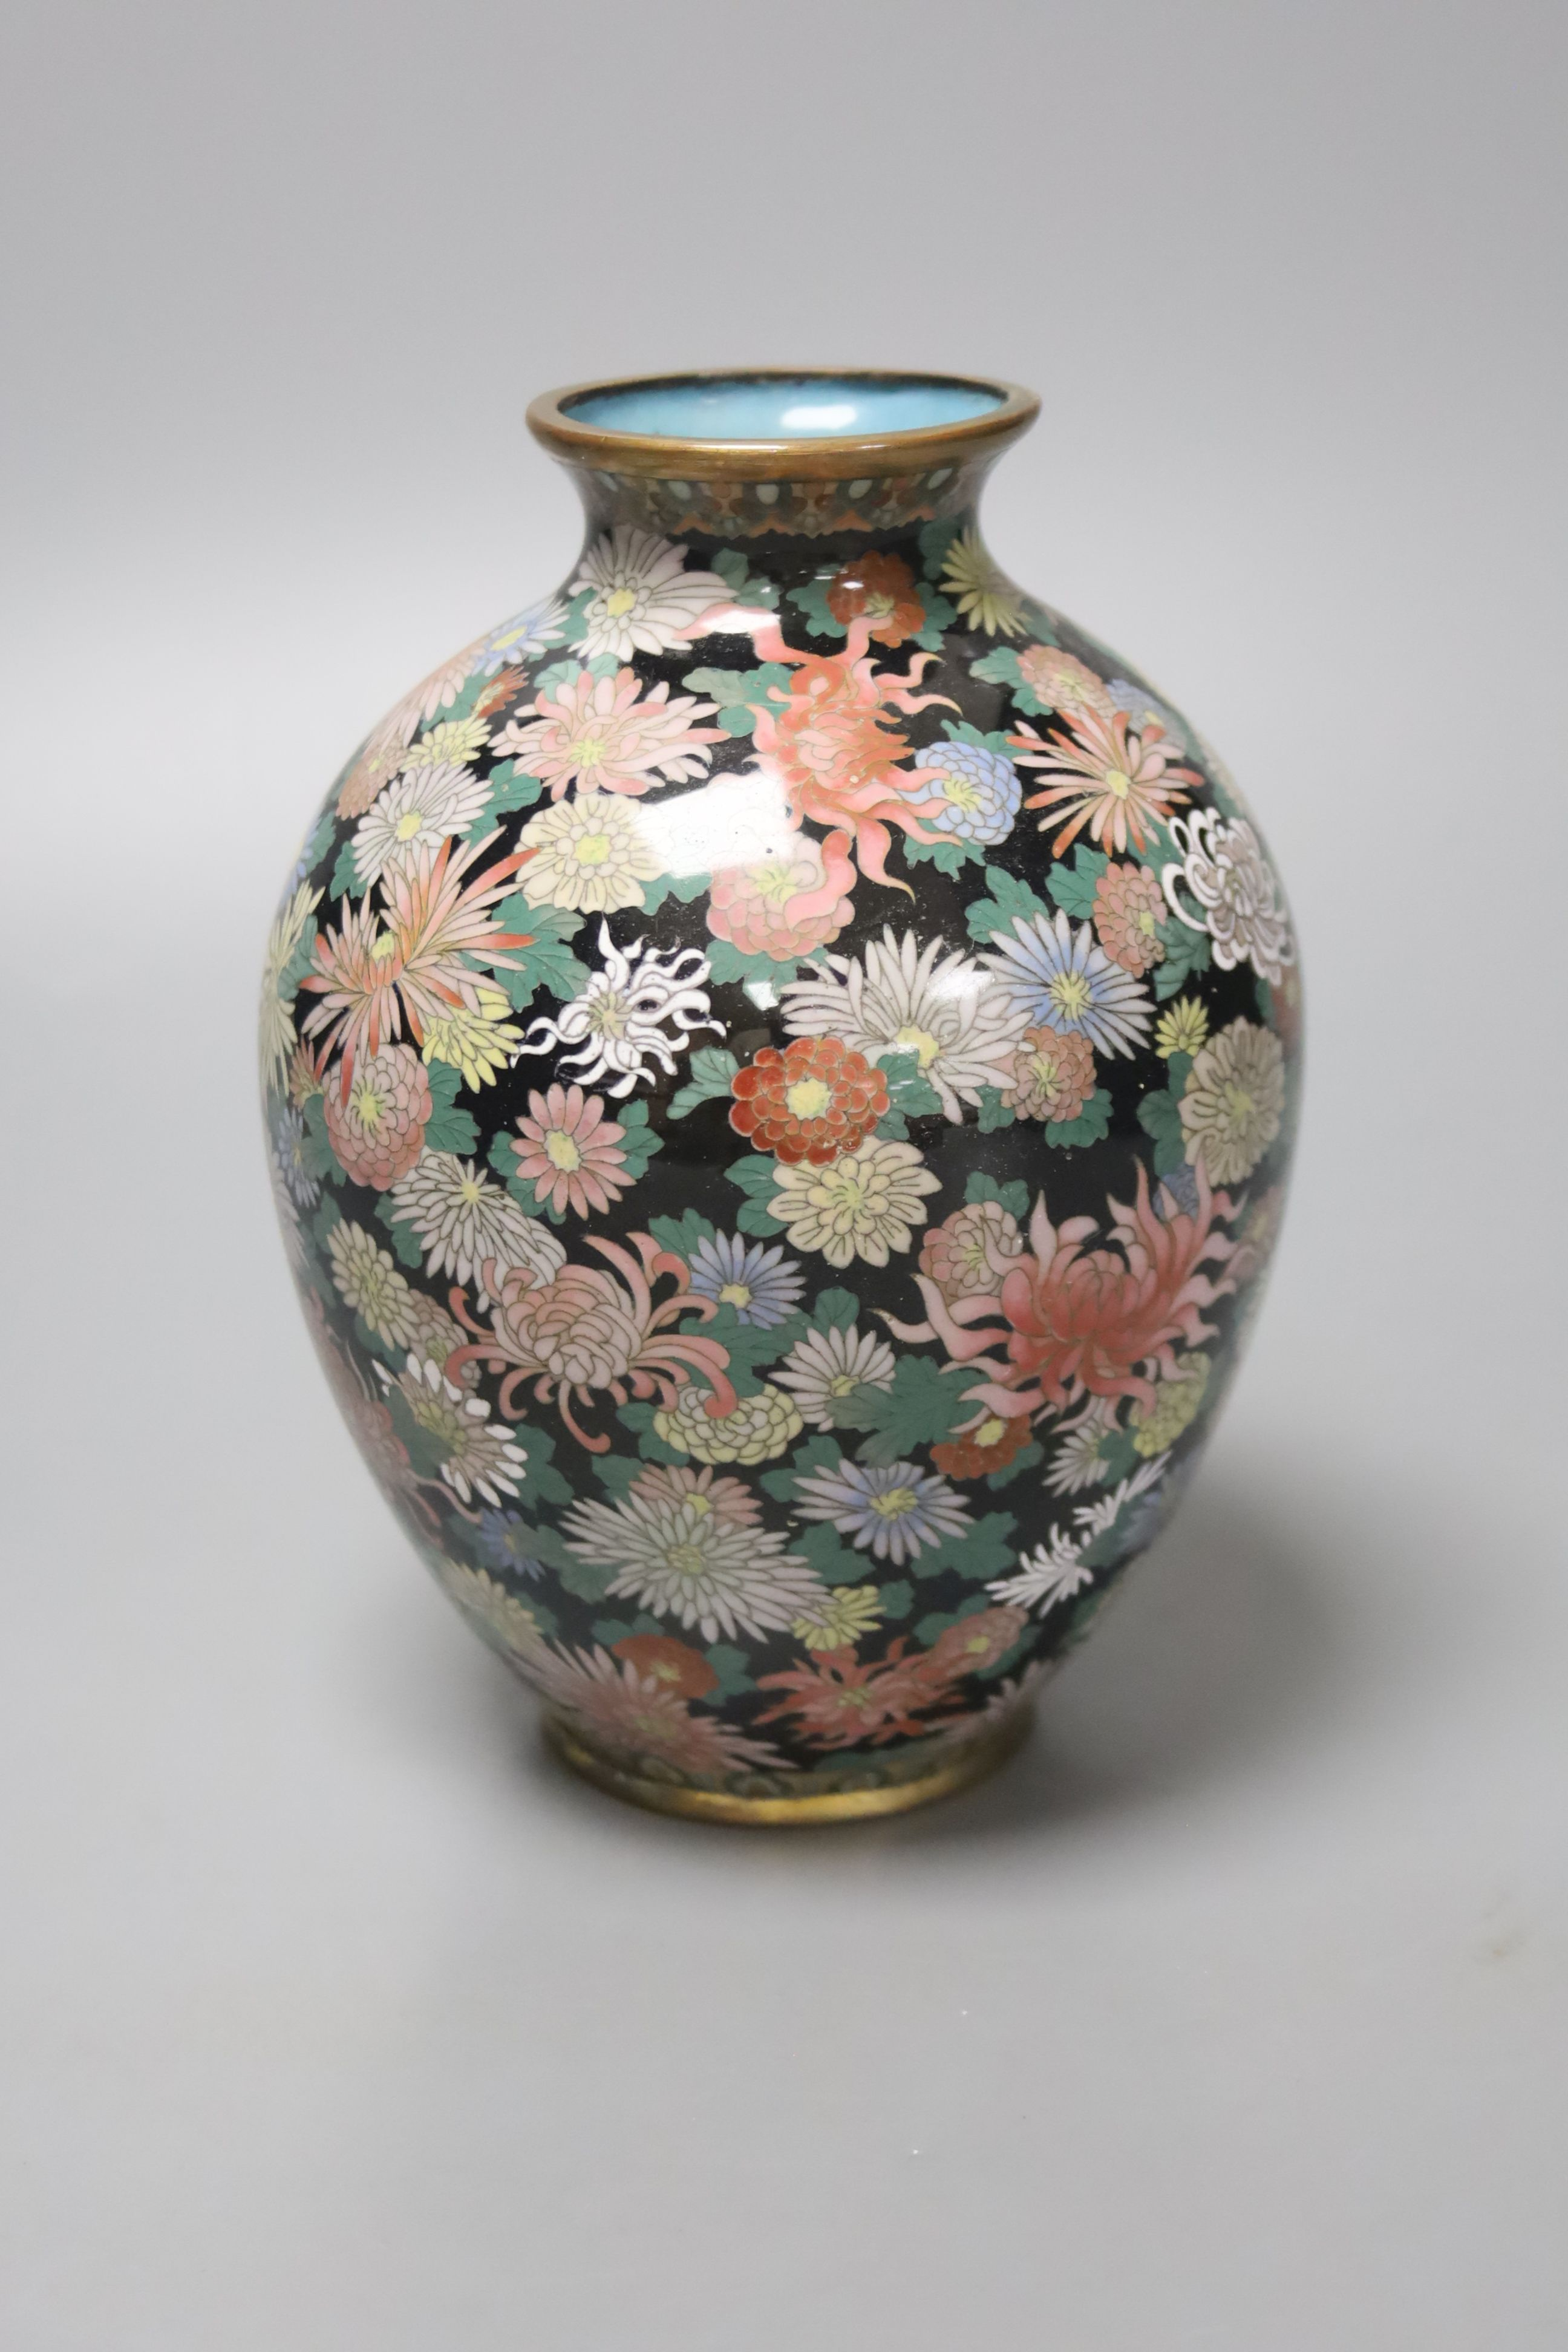 A Japanese silver wire cloisonne vase, decorated with flower heads, possibly Inaba, 16cm high